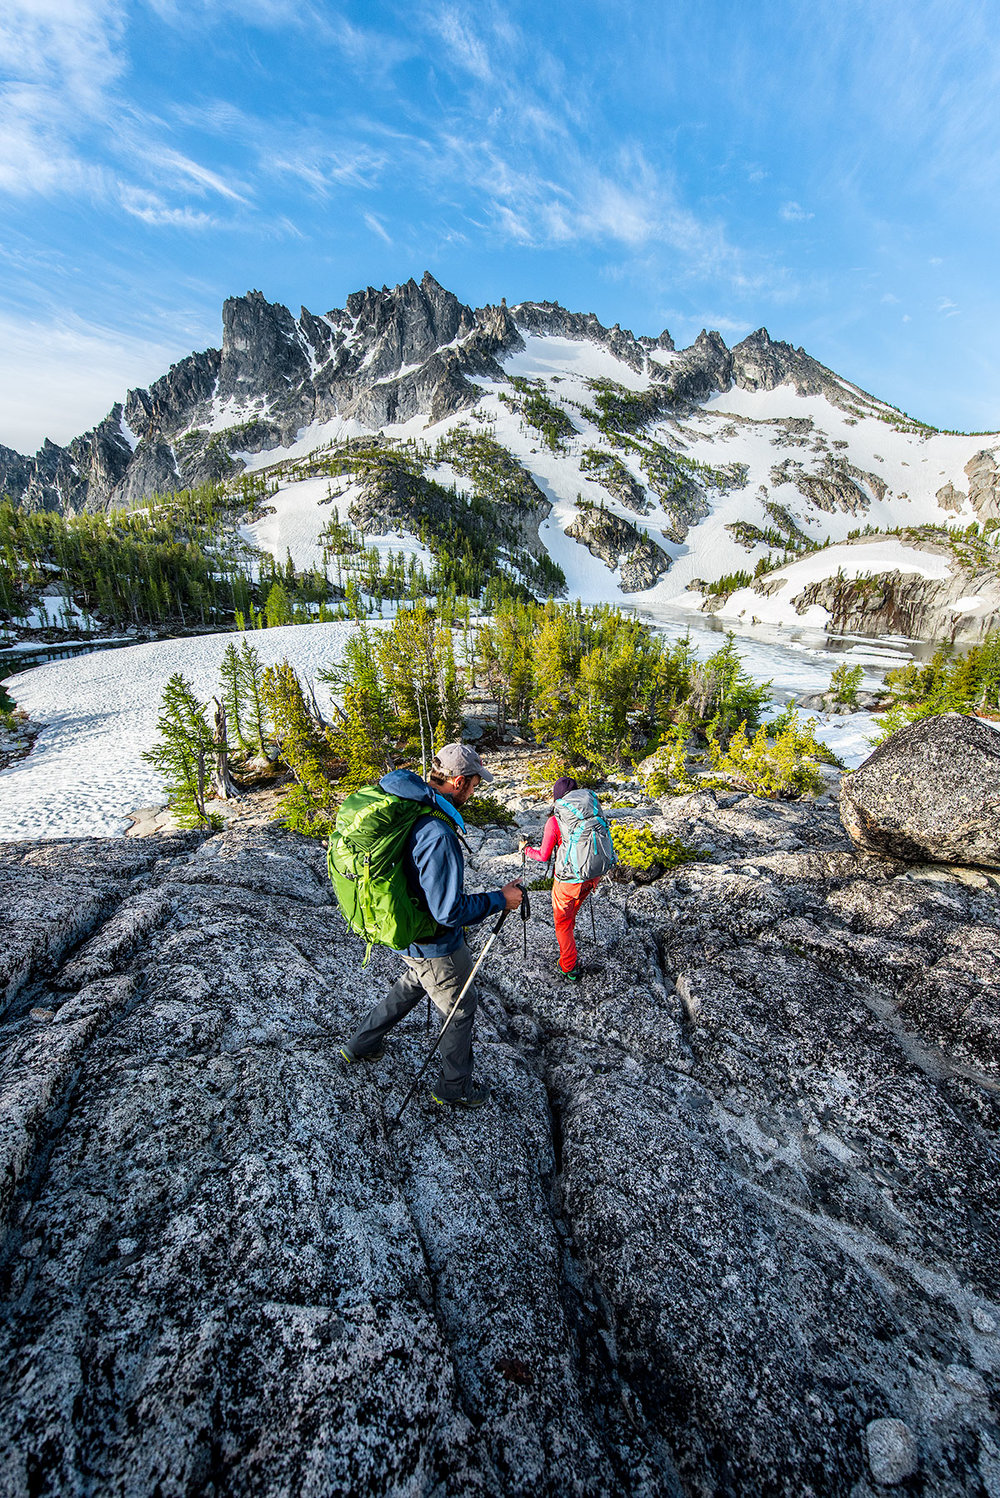 austin-trigg-osprey-hiking-backpacks-hike-camp-washington-adventure-morning-sunrise-lifestyle-outdoor-couple-.jpg